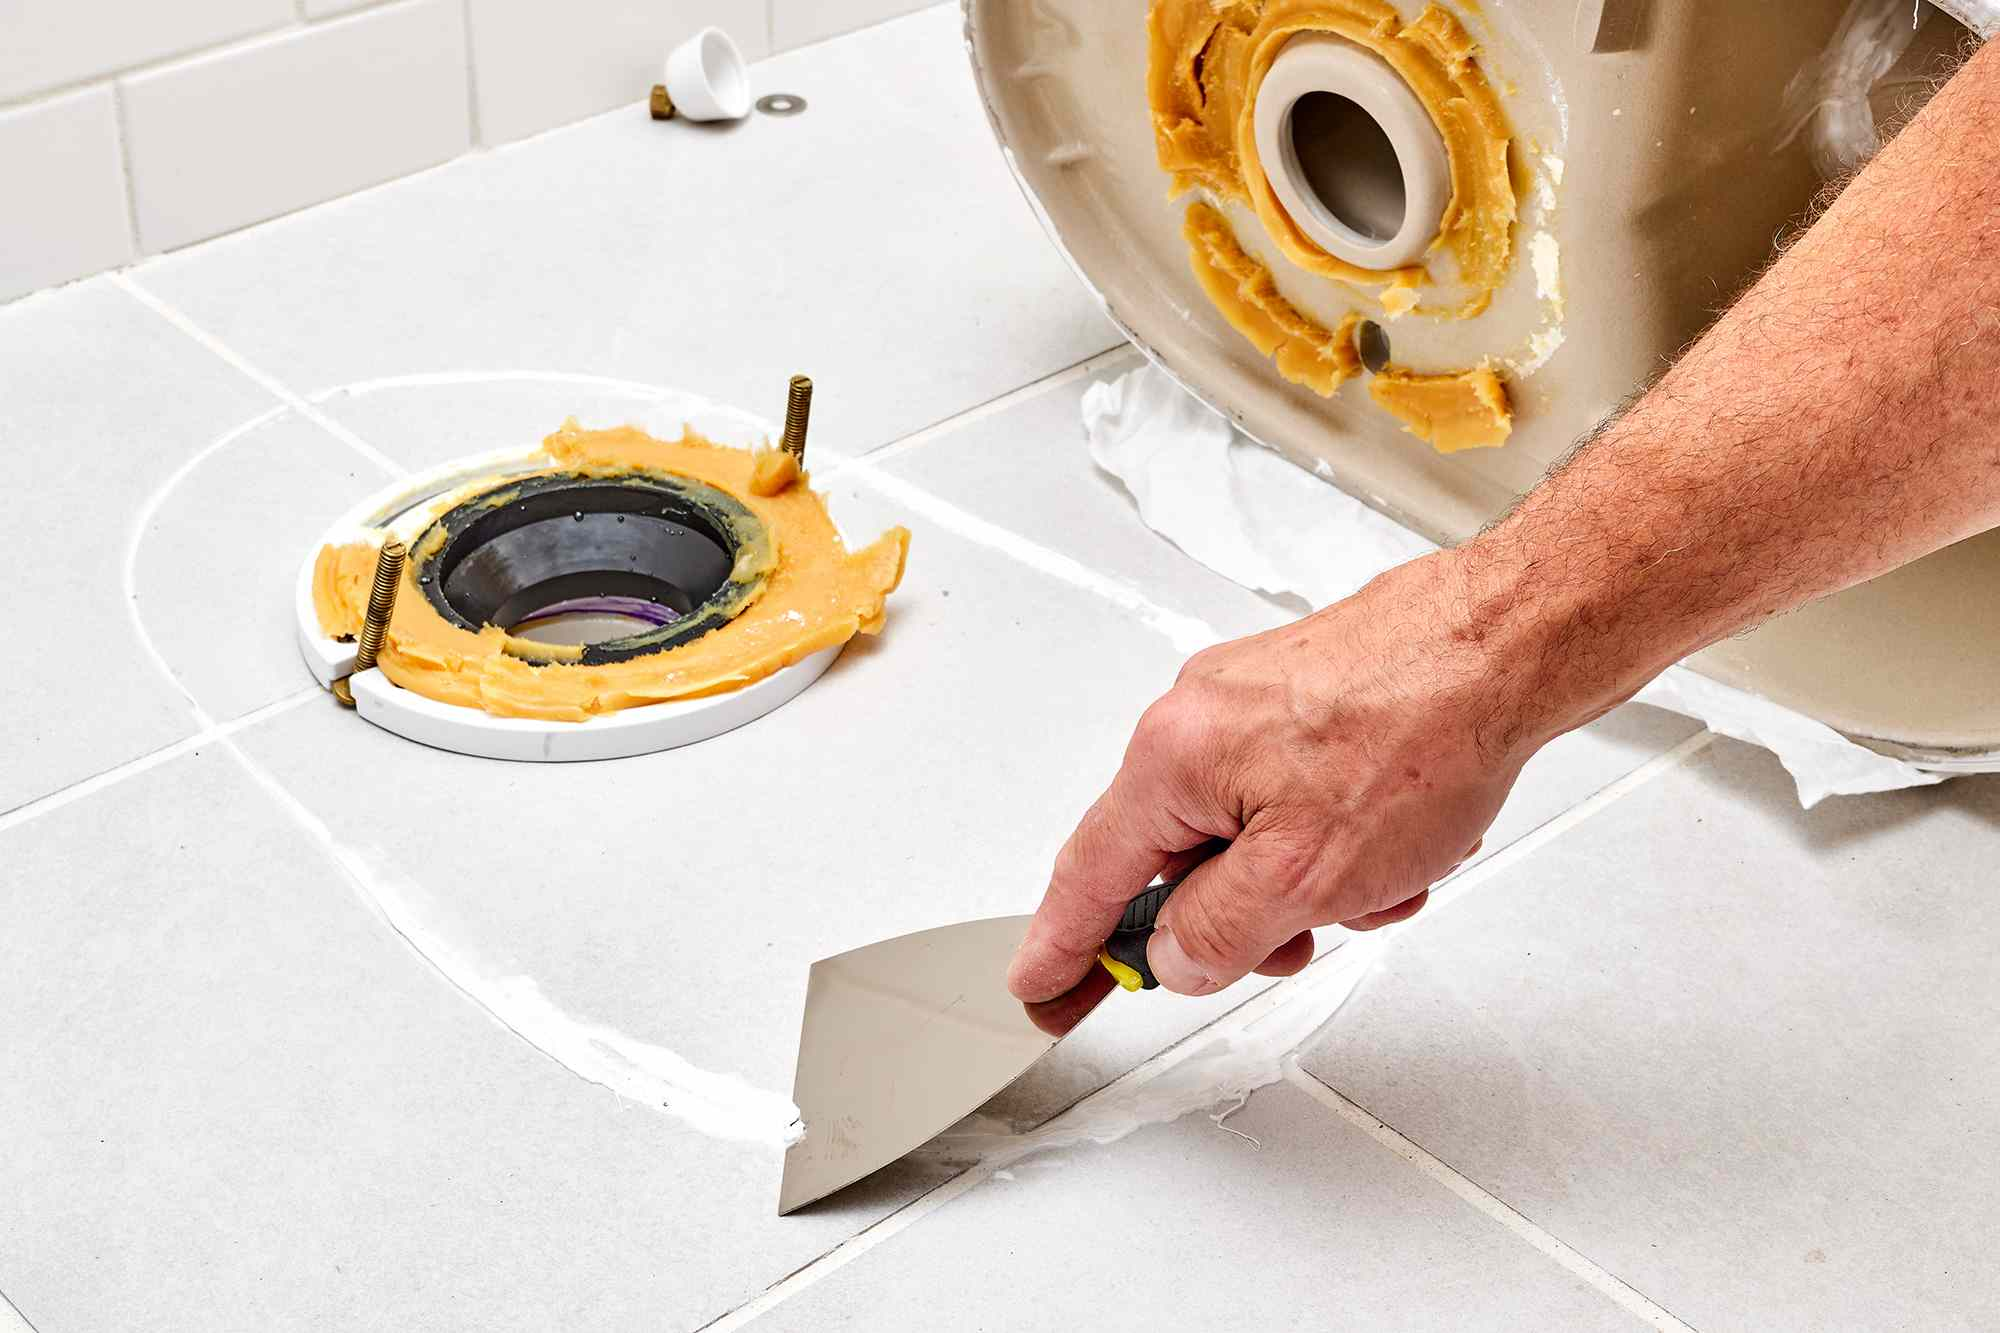 Putty knife removing old caulk from floor